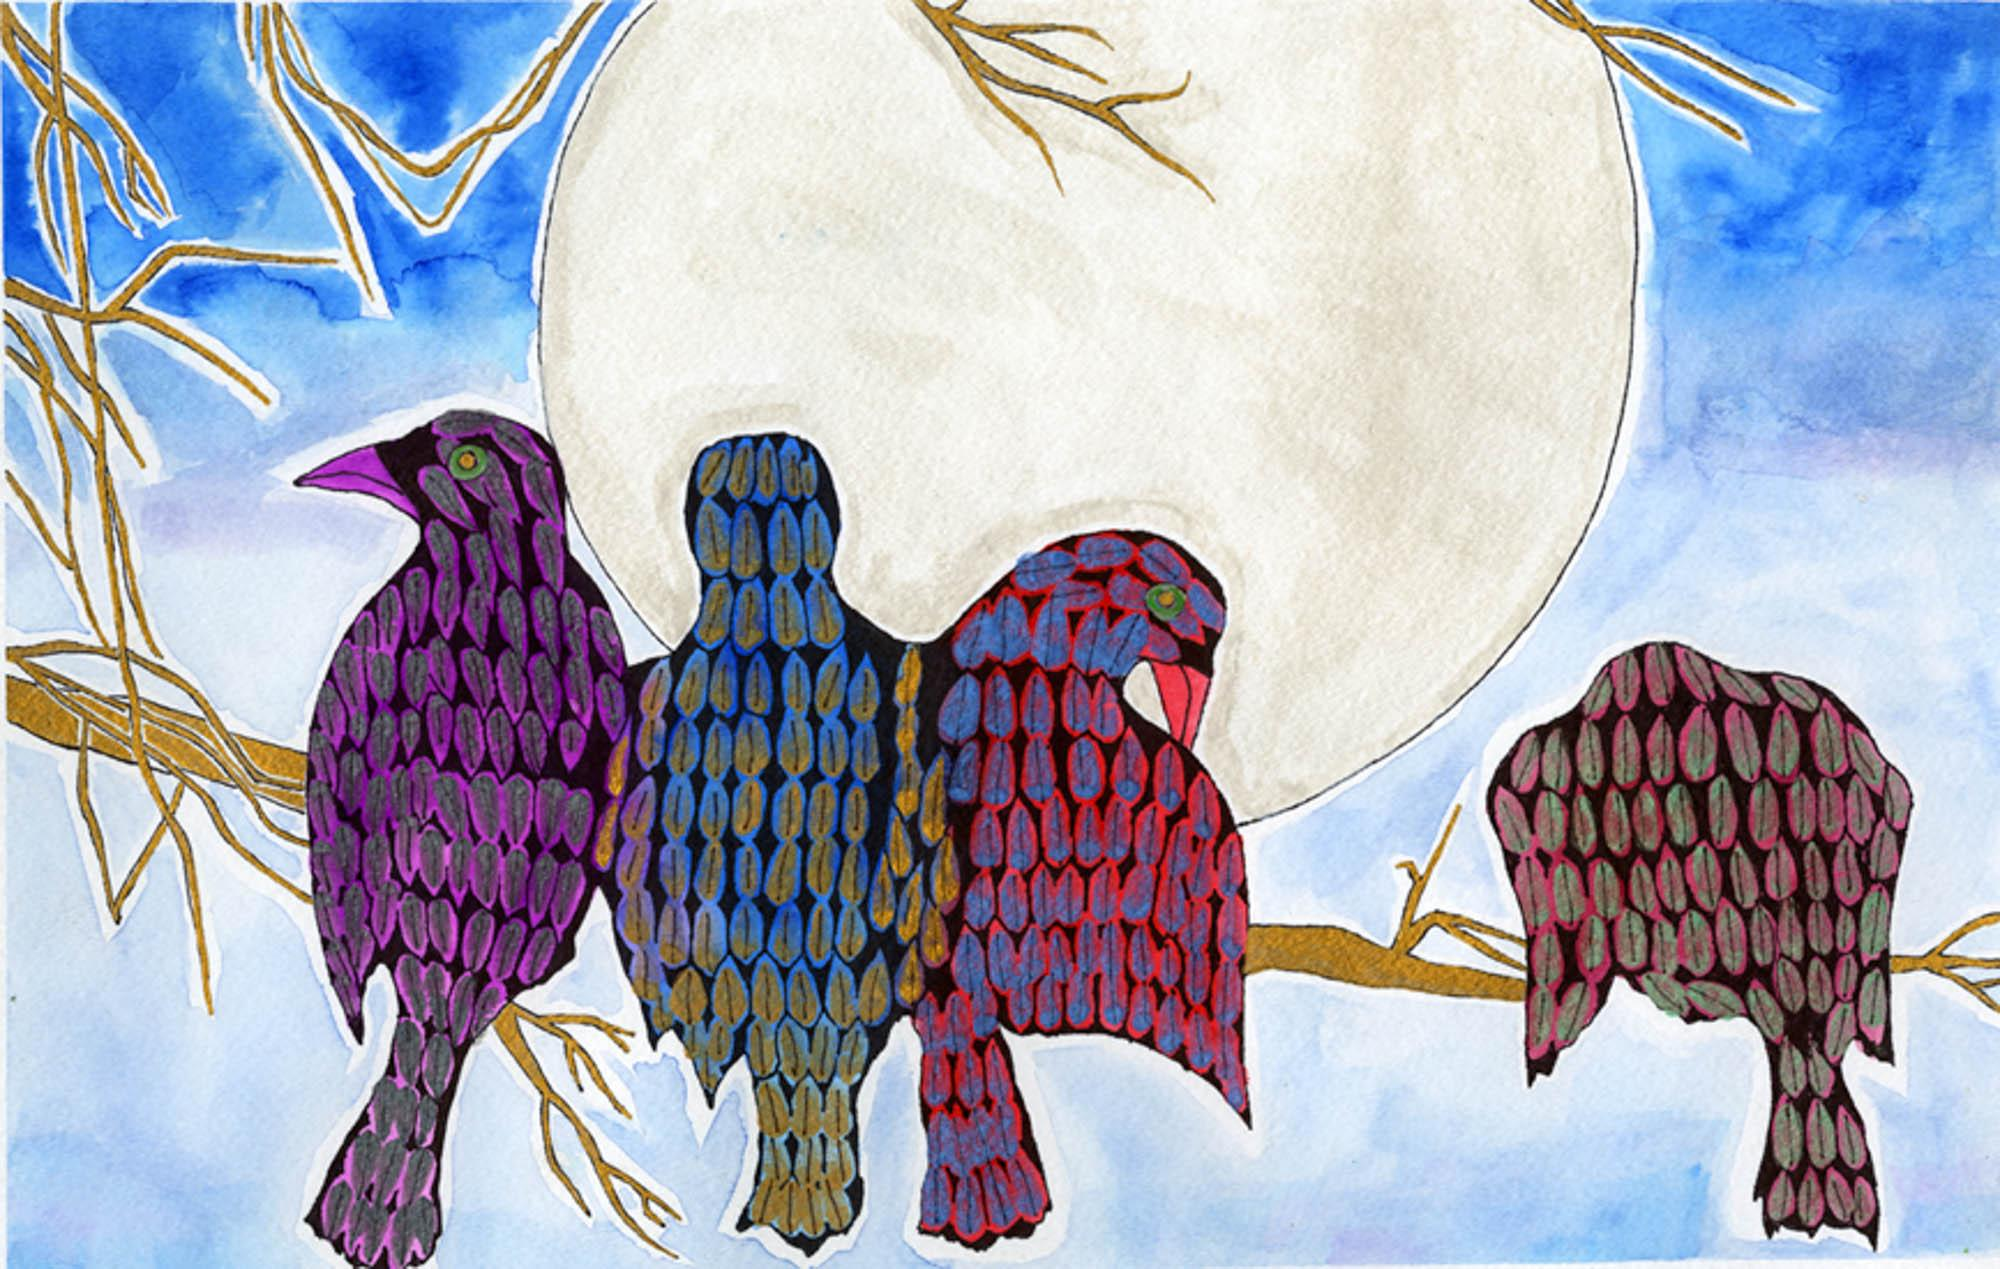 Tranquil Crows, Mira Darham, age 14 Bozeman, Montana  (Submitted Independently), 2013 River of Words Finalist